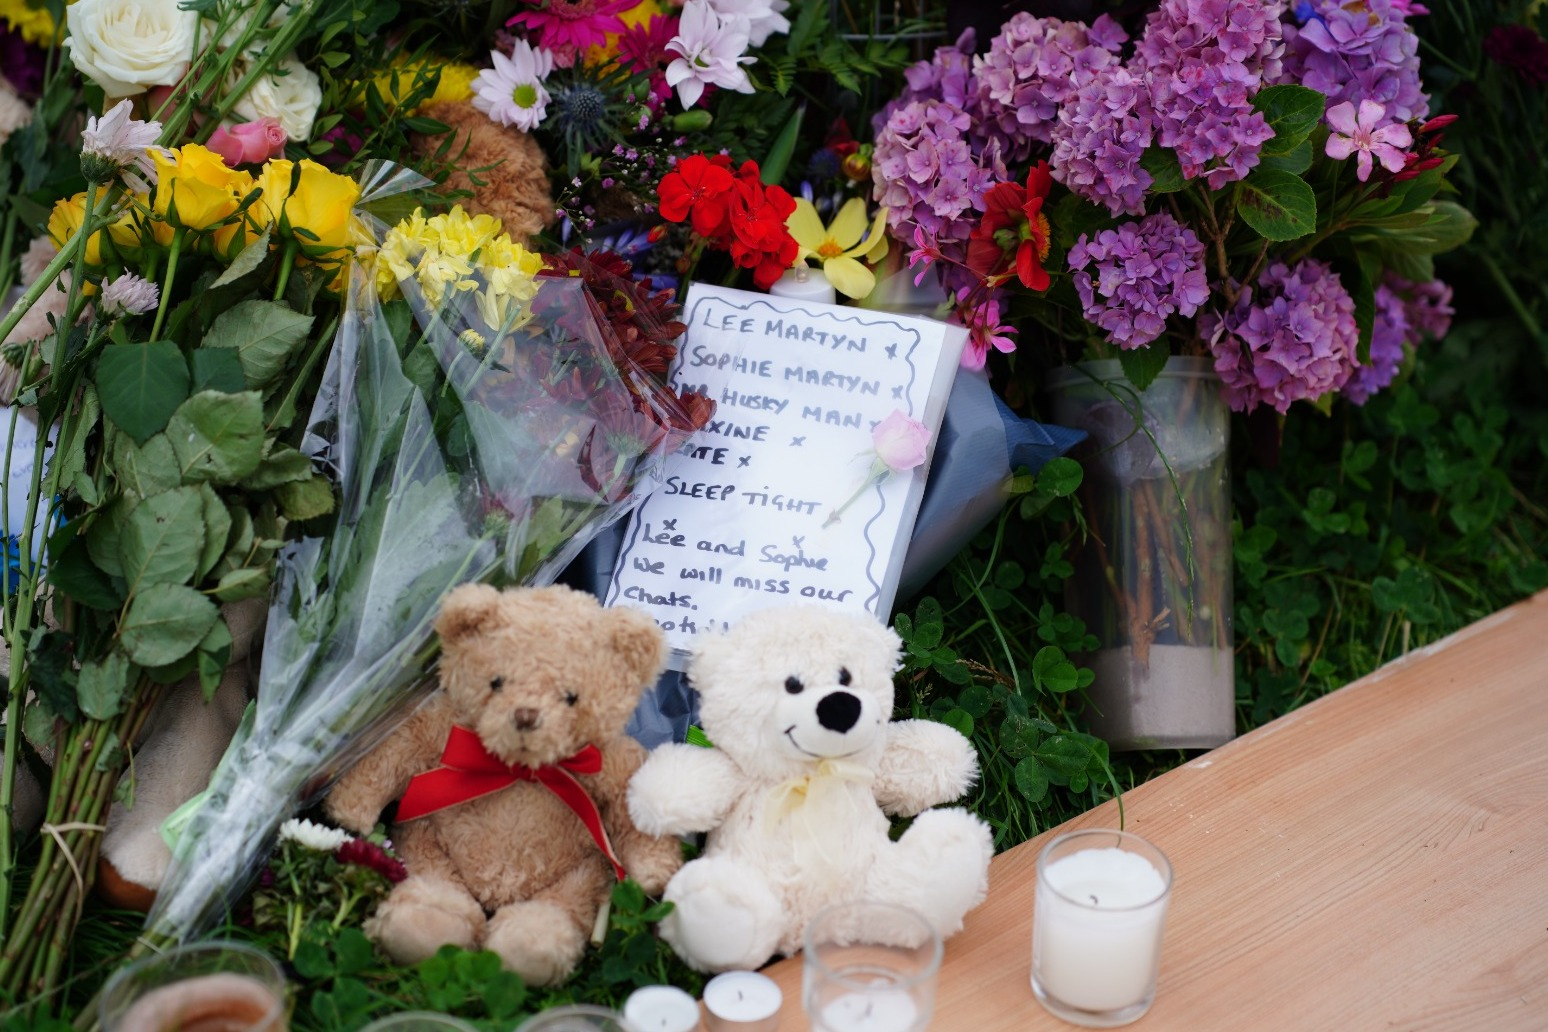 Police to review firearms practices in light of Plymouth shooting atrocity